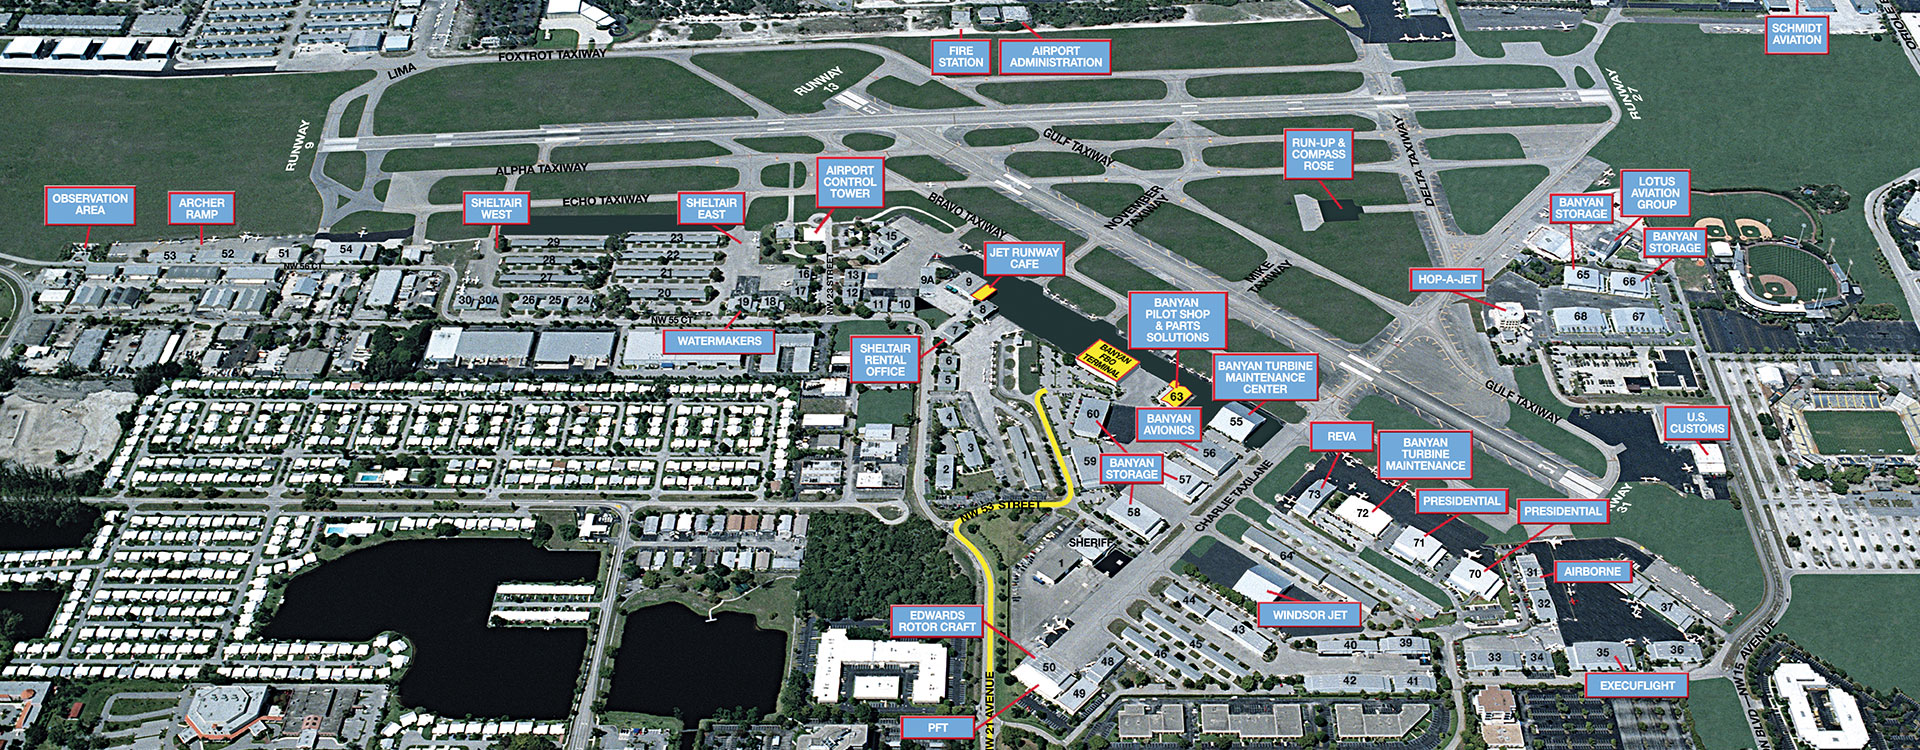 Ft. Lauderdale Executive Airport map